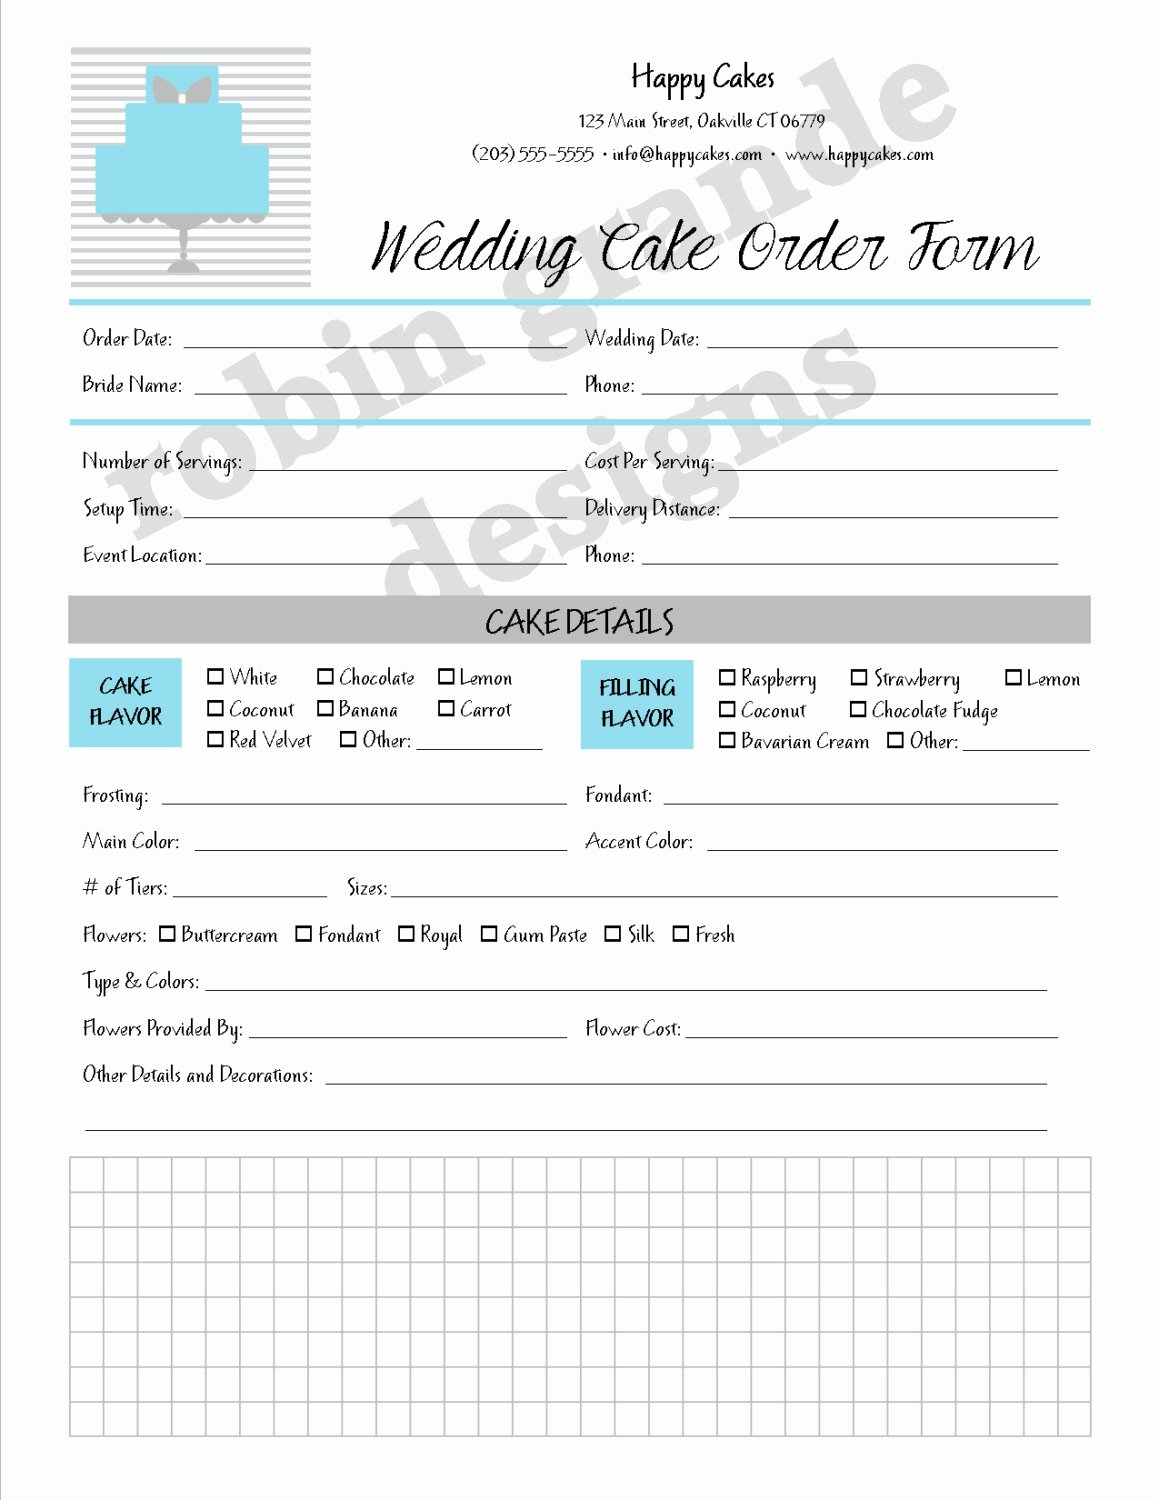 Cake order forms Printable Lovely Custom Cake Decorator Wedding Cake order form Contract for